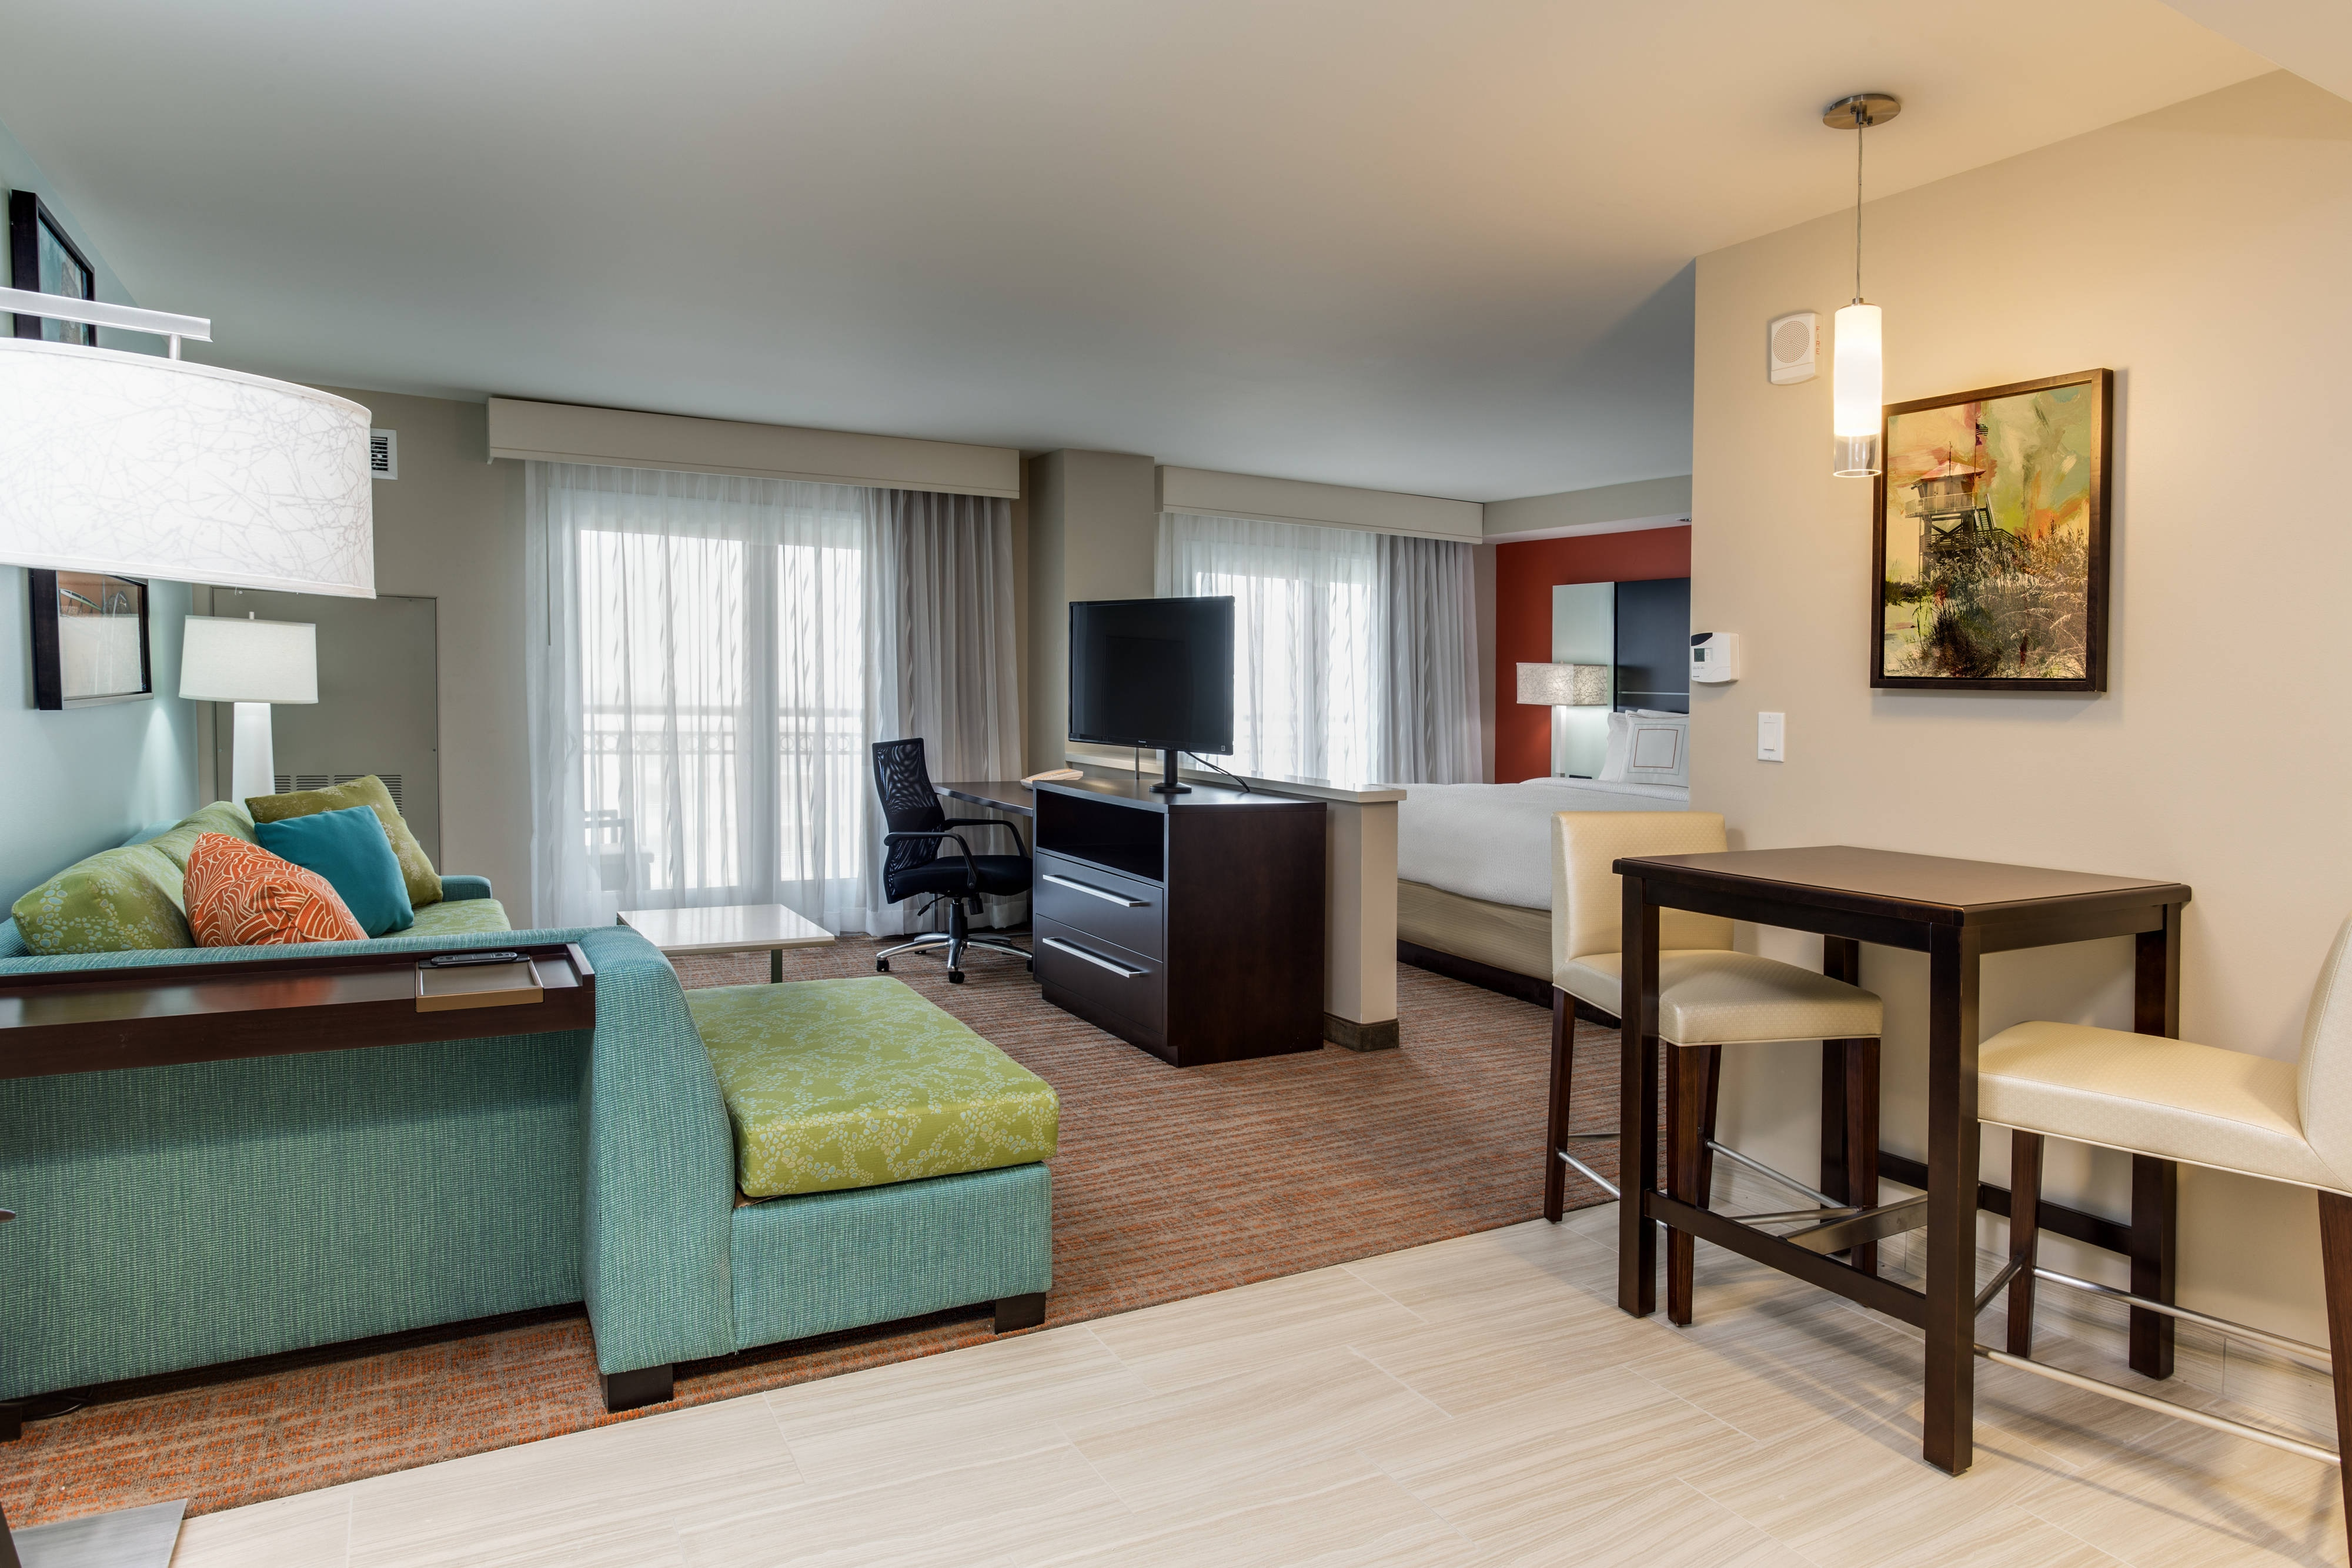 Marriott Hotels In Daytona Beach Area